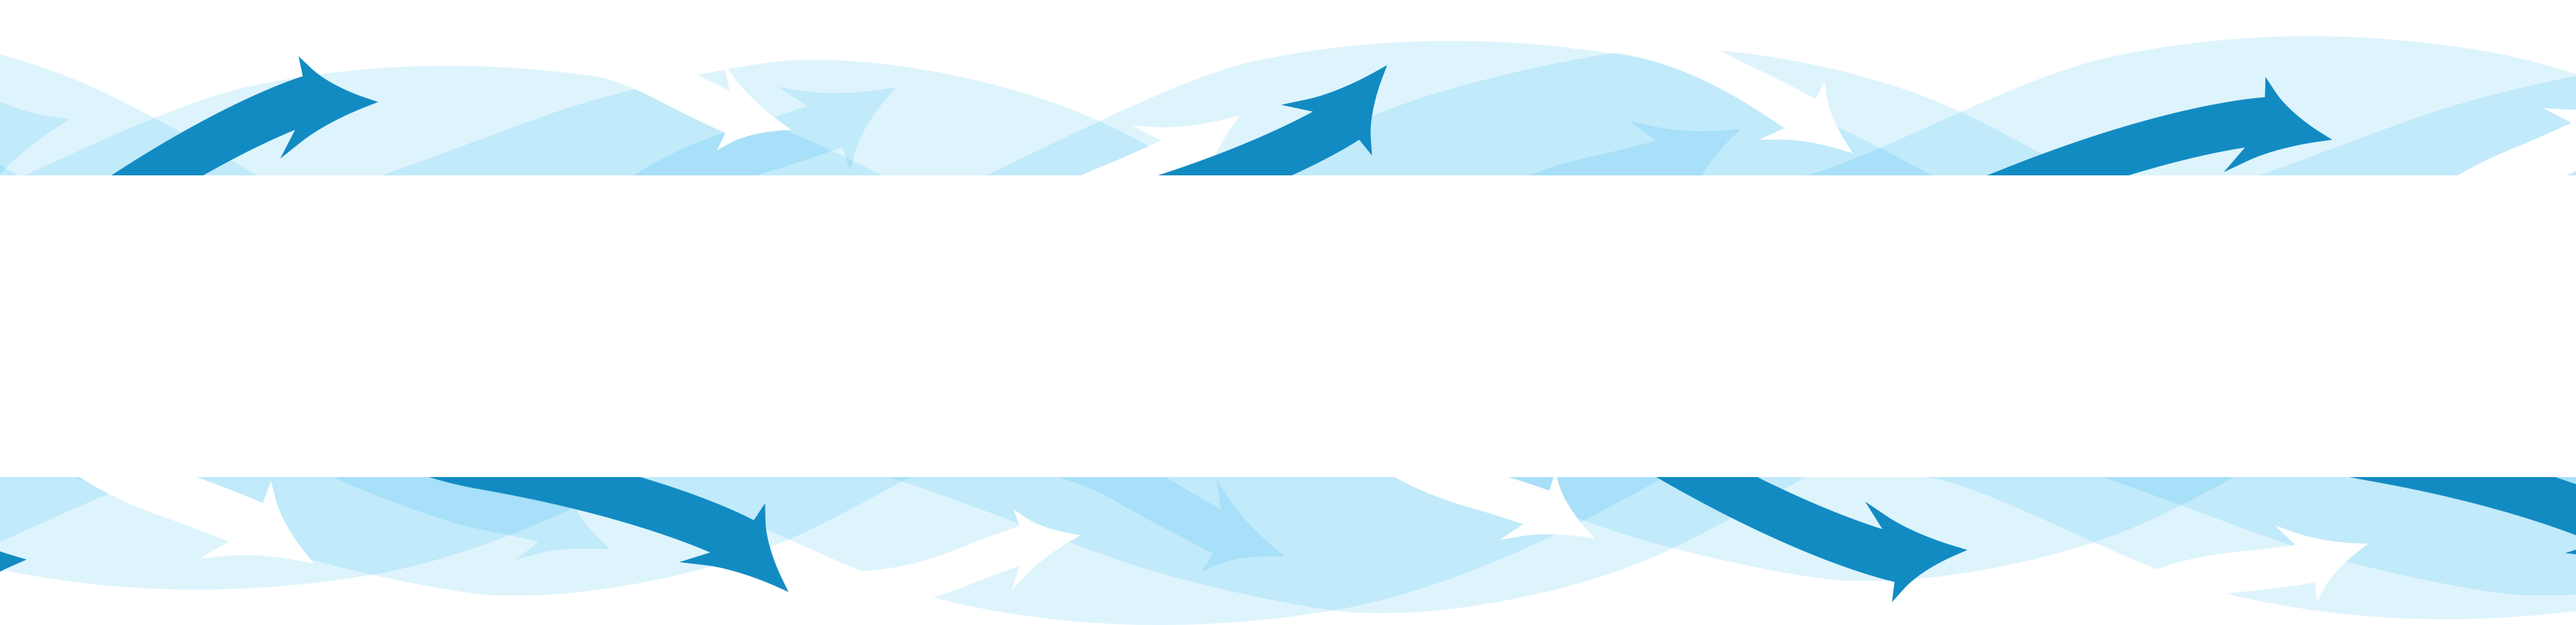 Water arrows background image